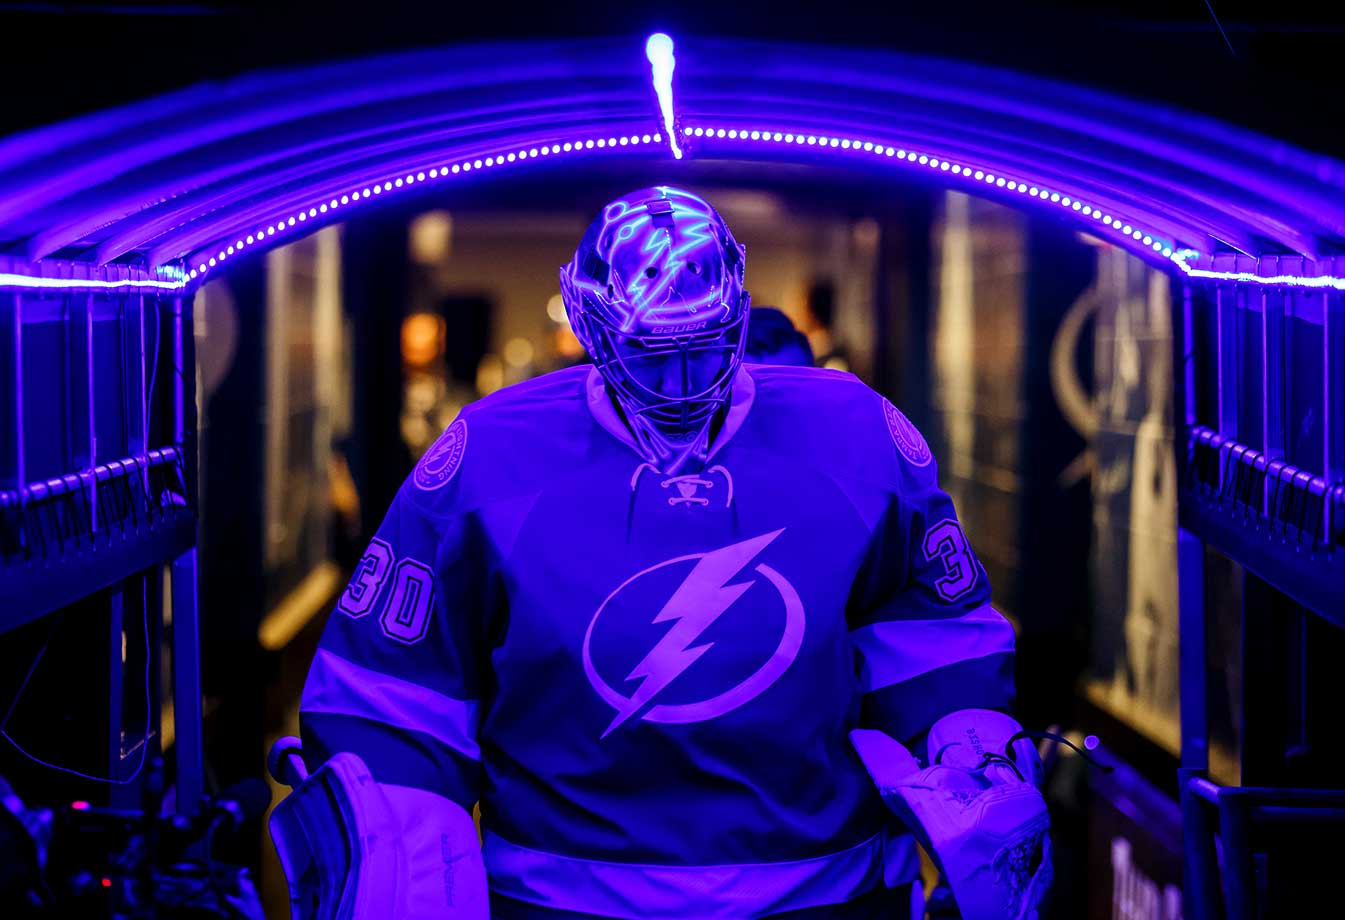 Goalie Ben Bishop of the Tampa Bay Lightning walks through a blue lit tunnel before pregame warmups against the Detroit Red Wings at the Amalie Arena.